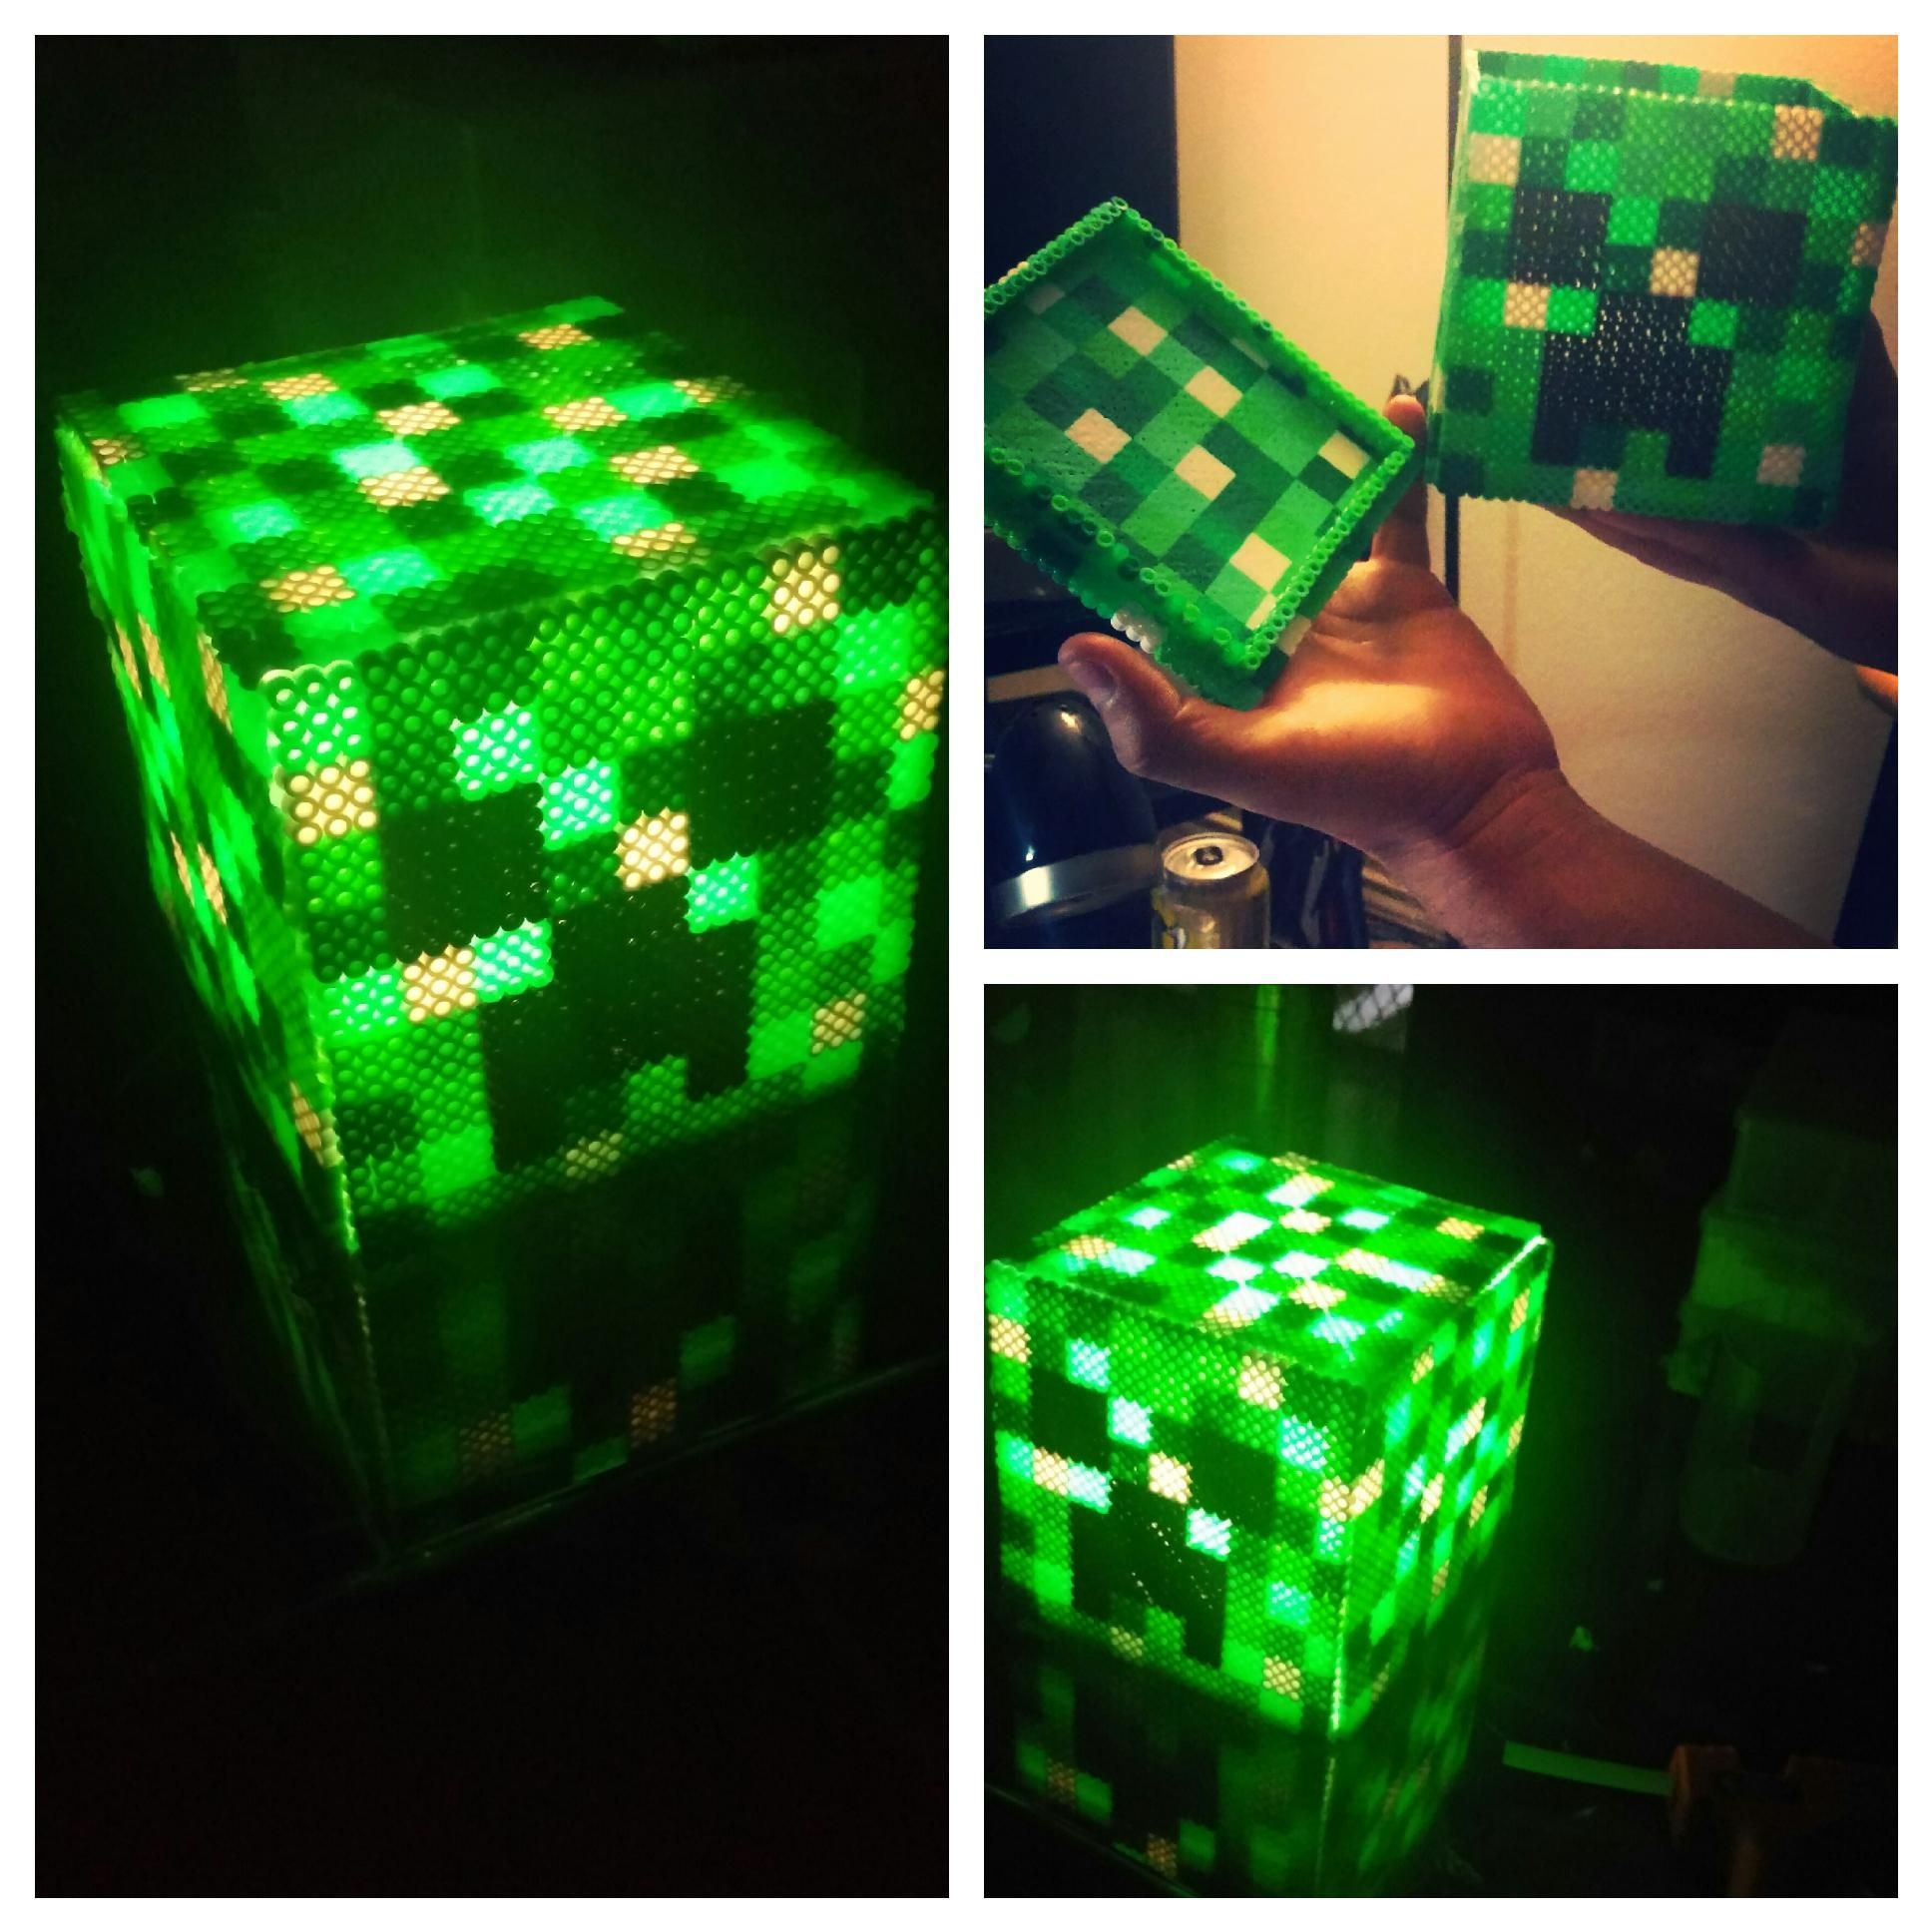 10 Inch 3d Perler Bead Minecraft Creeper By Bravedeity On Etsy